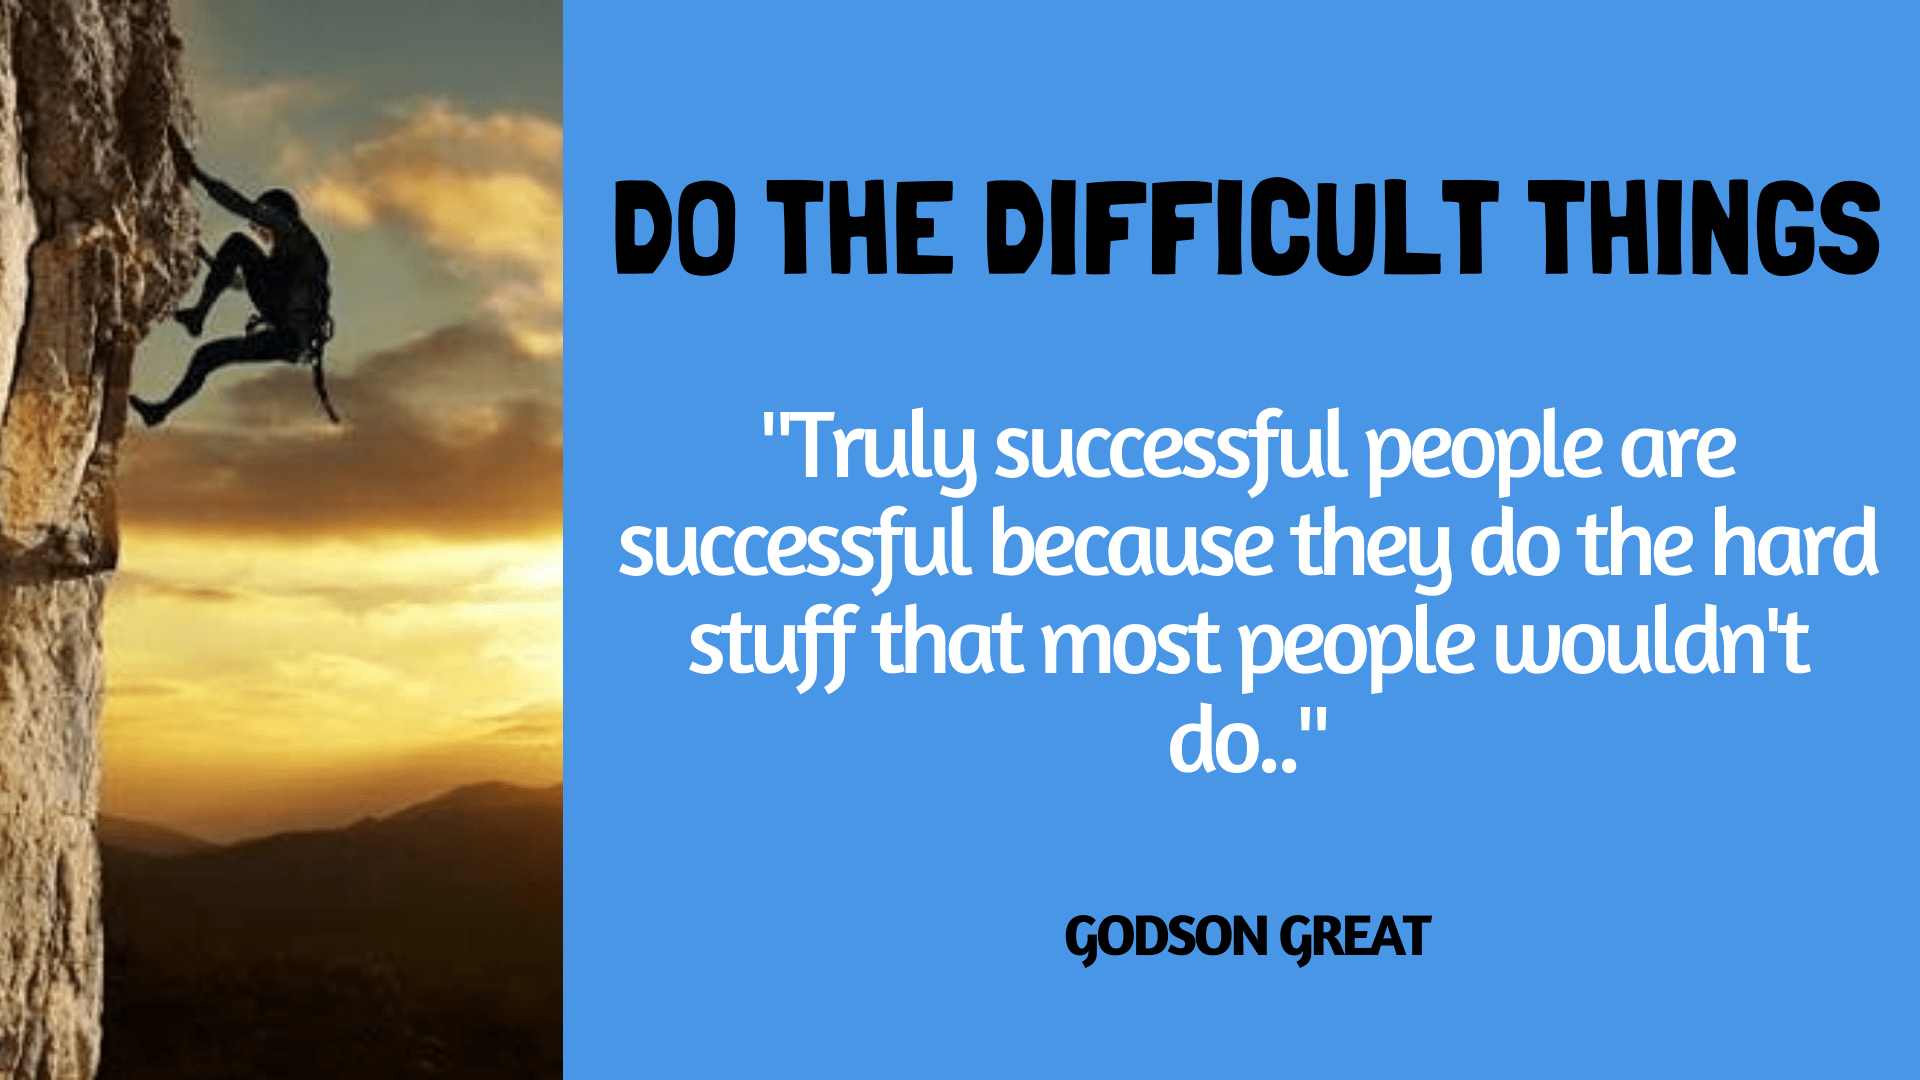 DO THE DIFFICULT THINGS